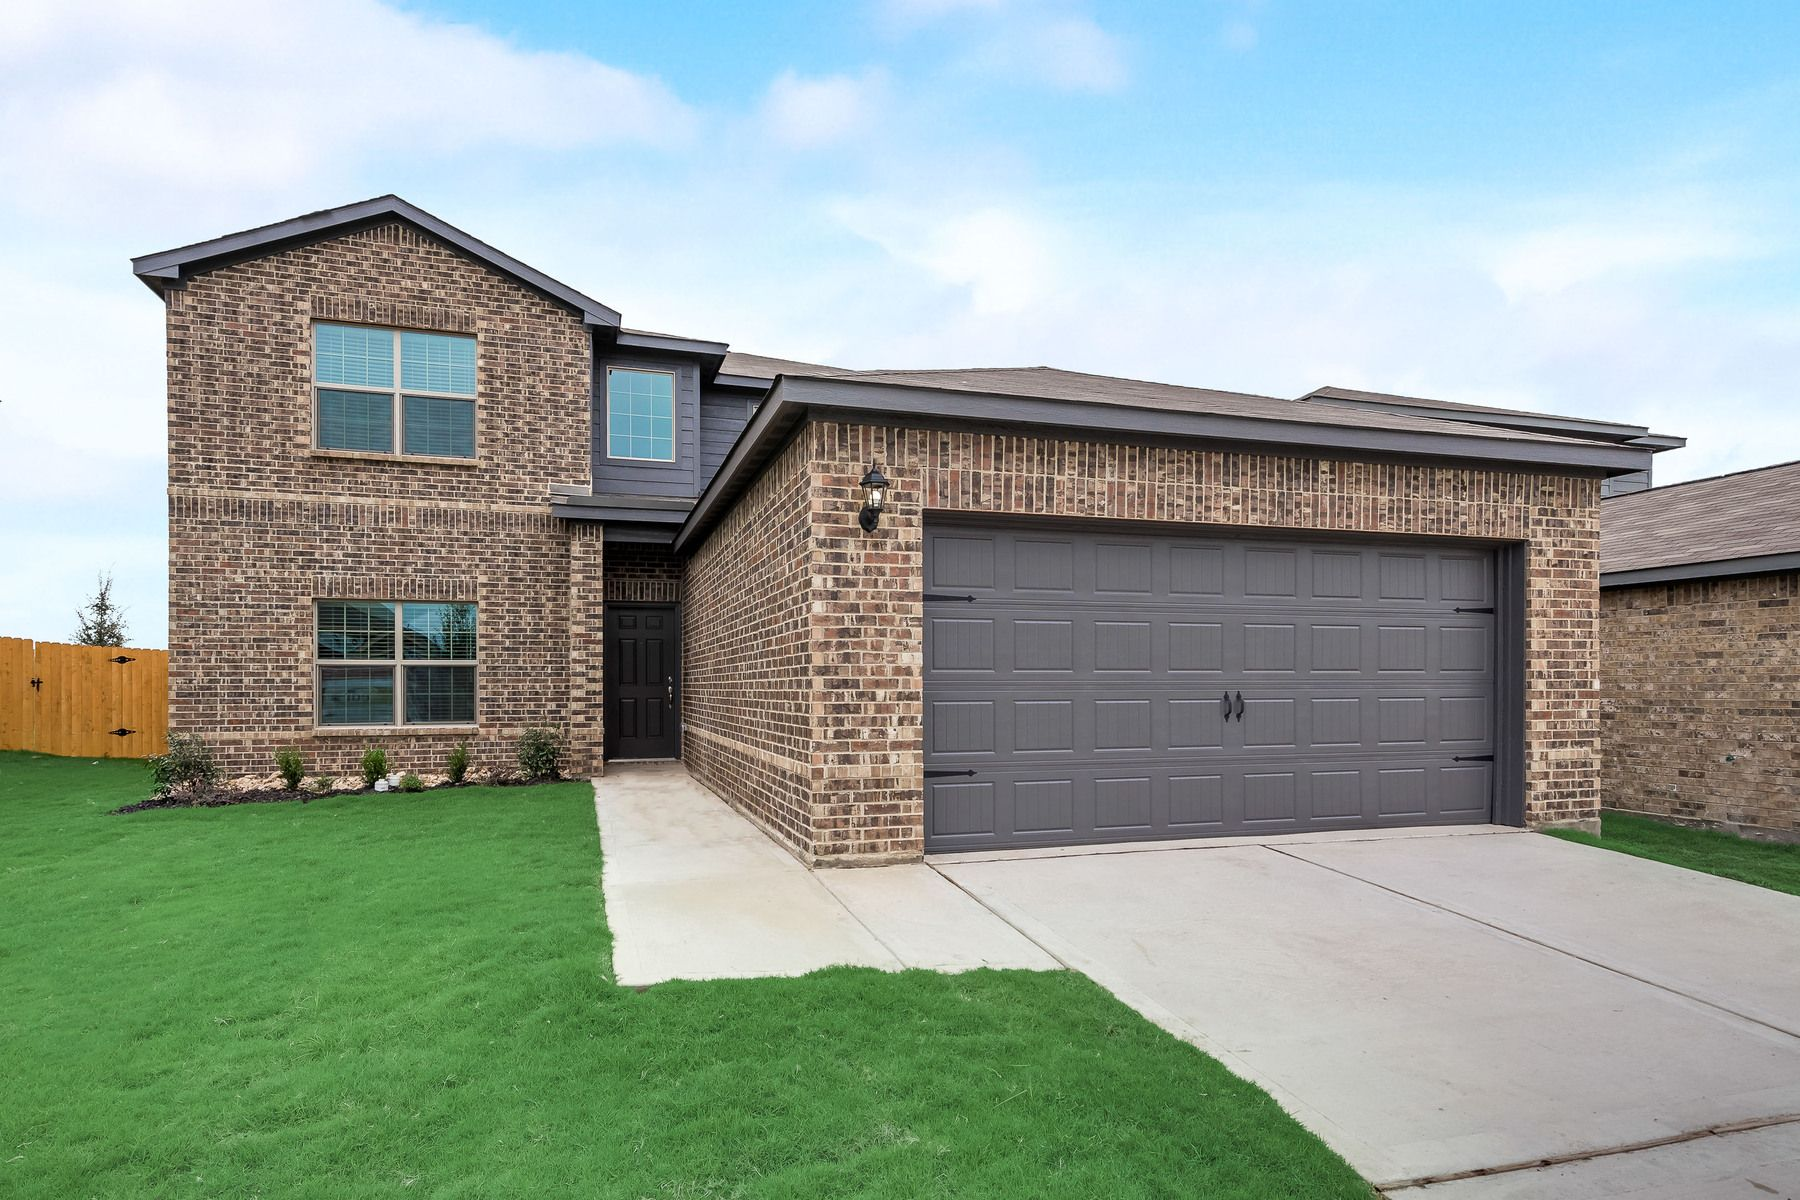 The Oakmont by LGI Homes:The Oakmont is ready for move-in at Seagoville Farms!